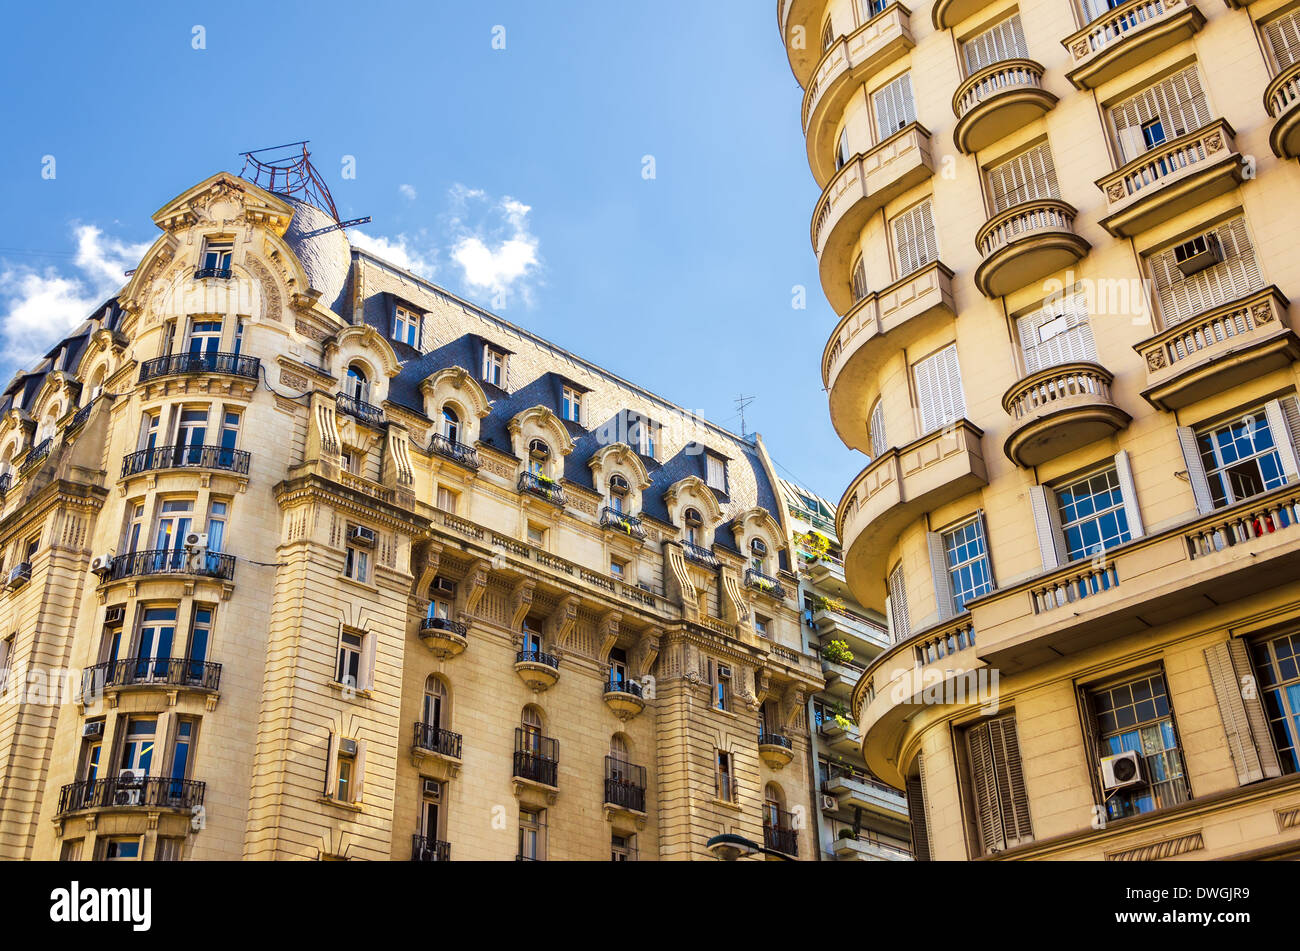 Beautiful French style architecture in the Recoleta neighborhood of Buenos Aires, Argentina - Stock Image